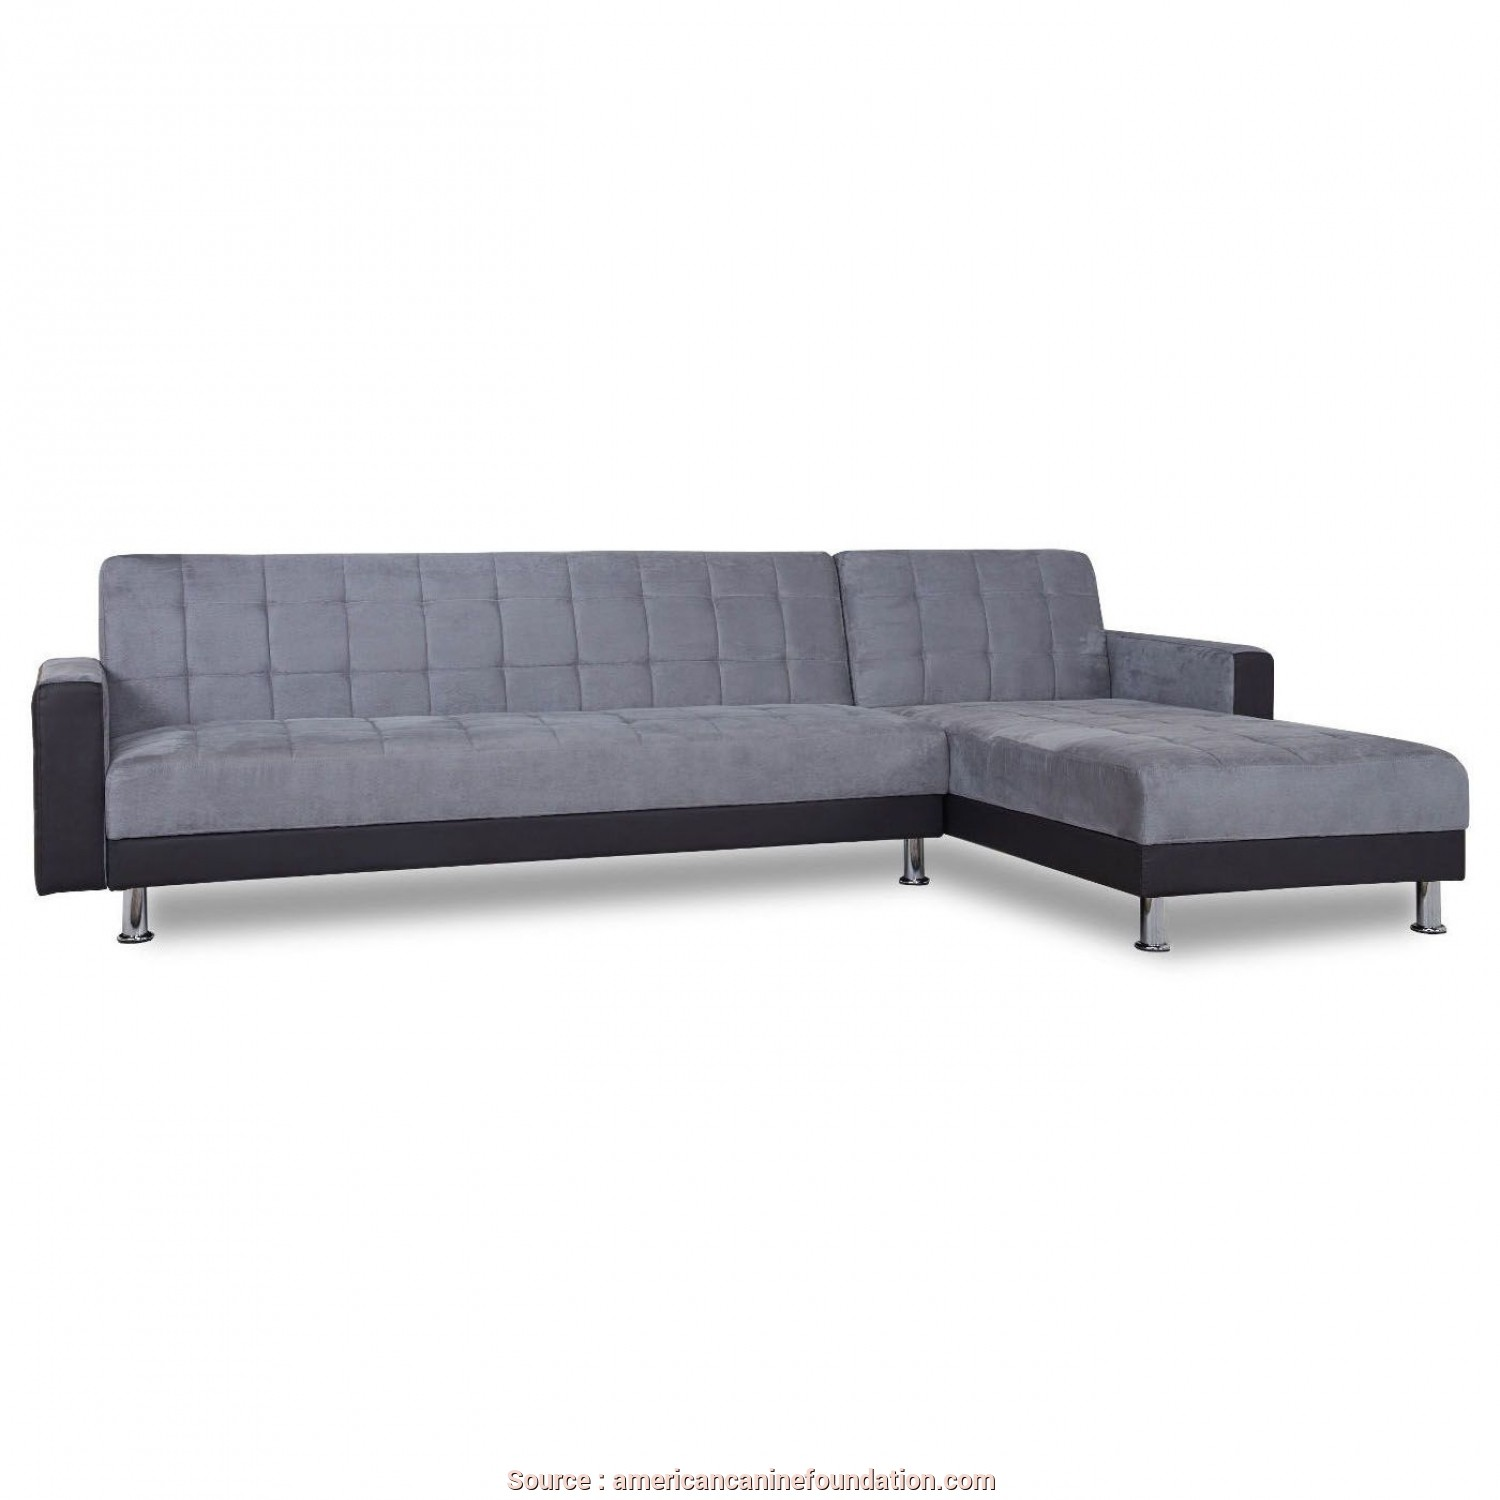 Futon Ikea Cz, Modesto Glistening Futons Ikea With Futons From Ikea, Modern Family Room Ideas